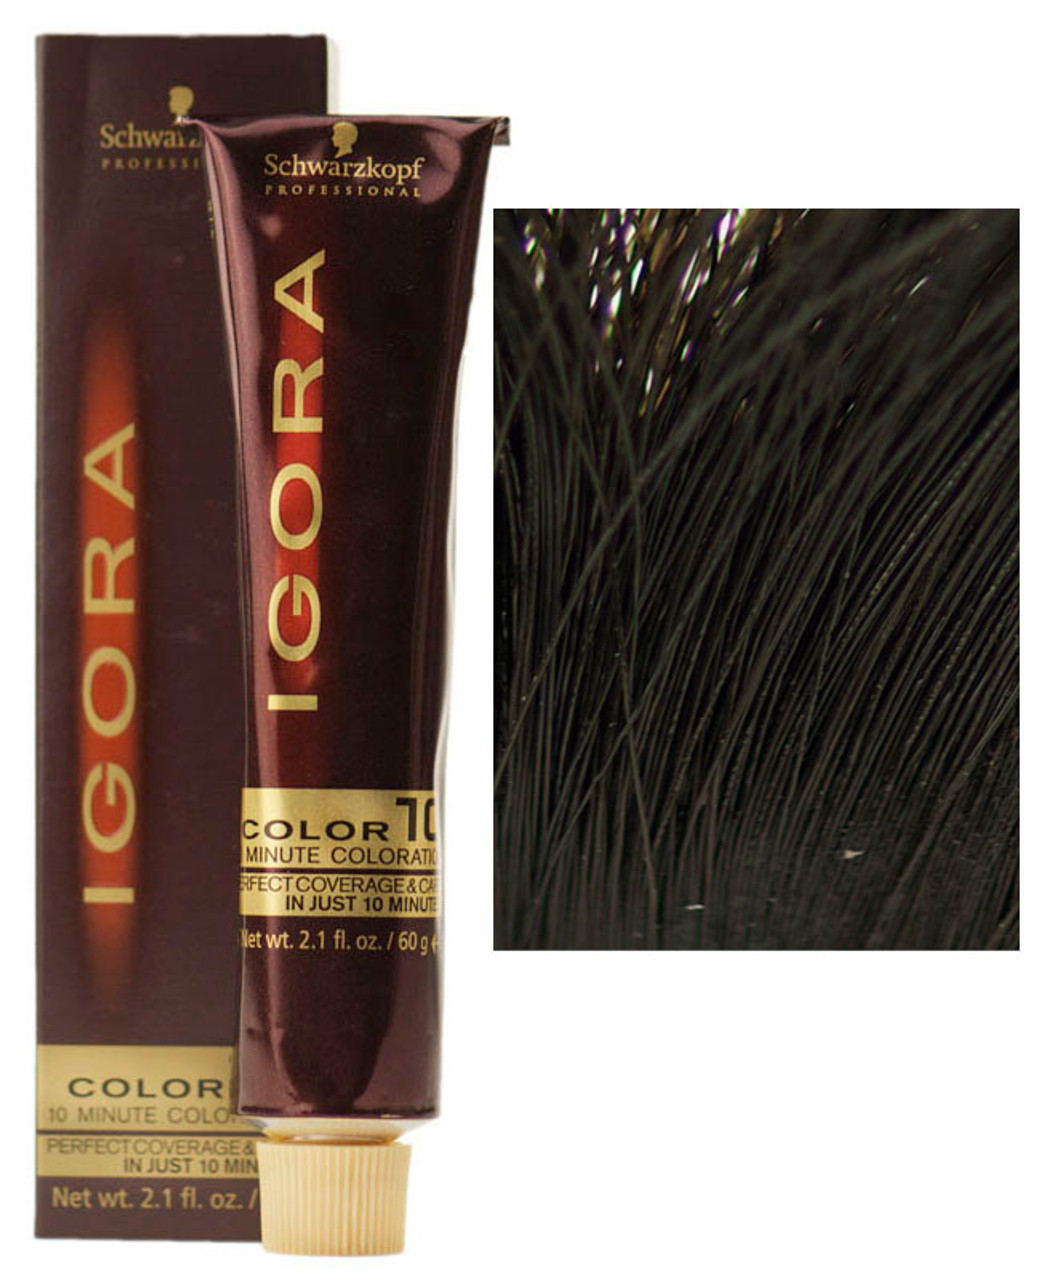 Schwarzkopf Professional Igora Color10 Hair Color Sleekshop